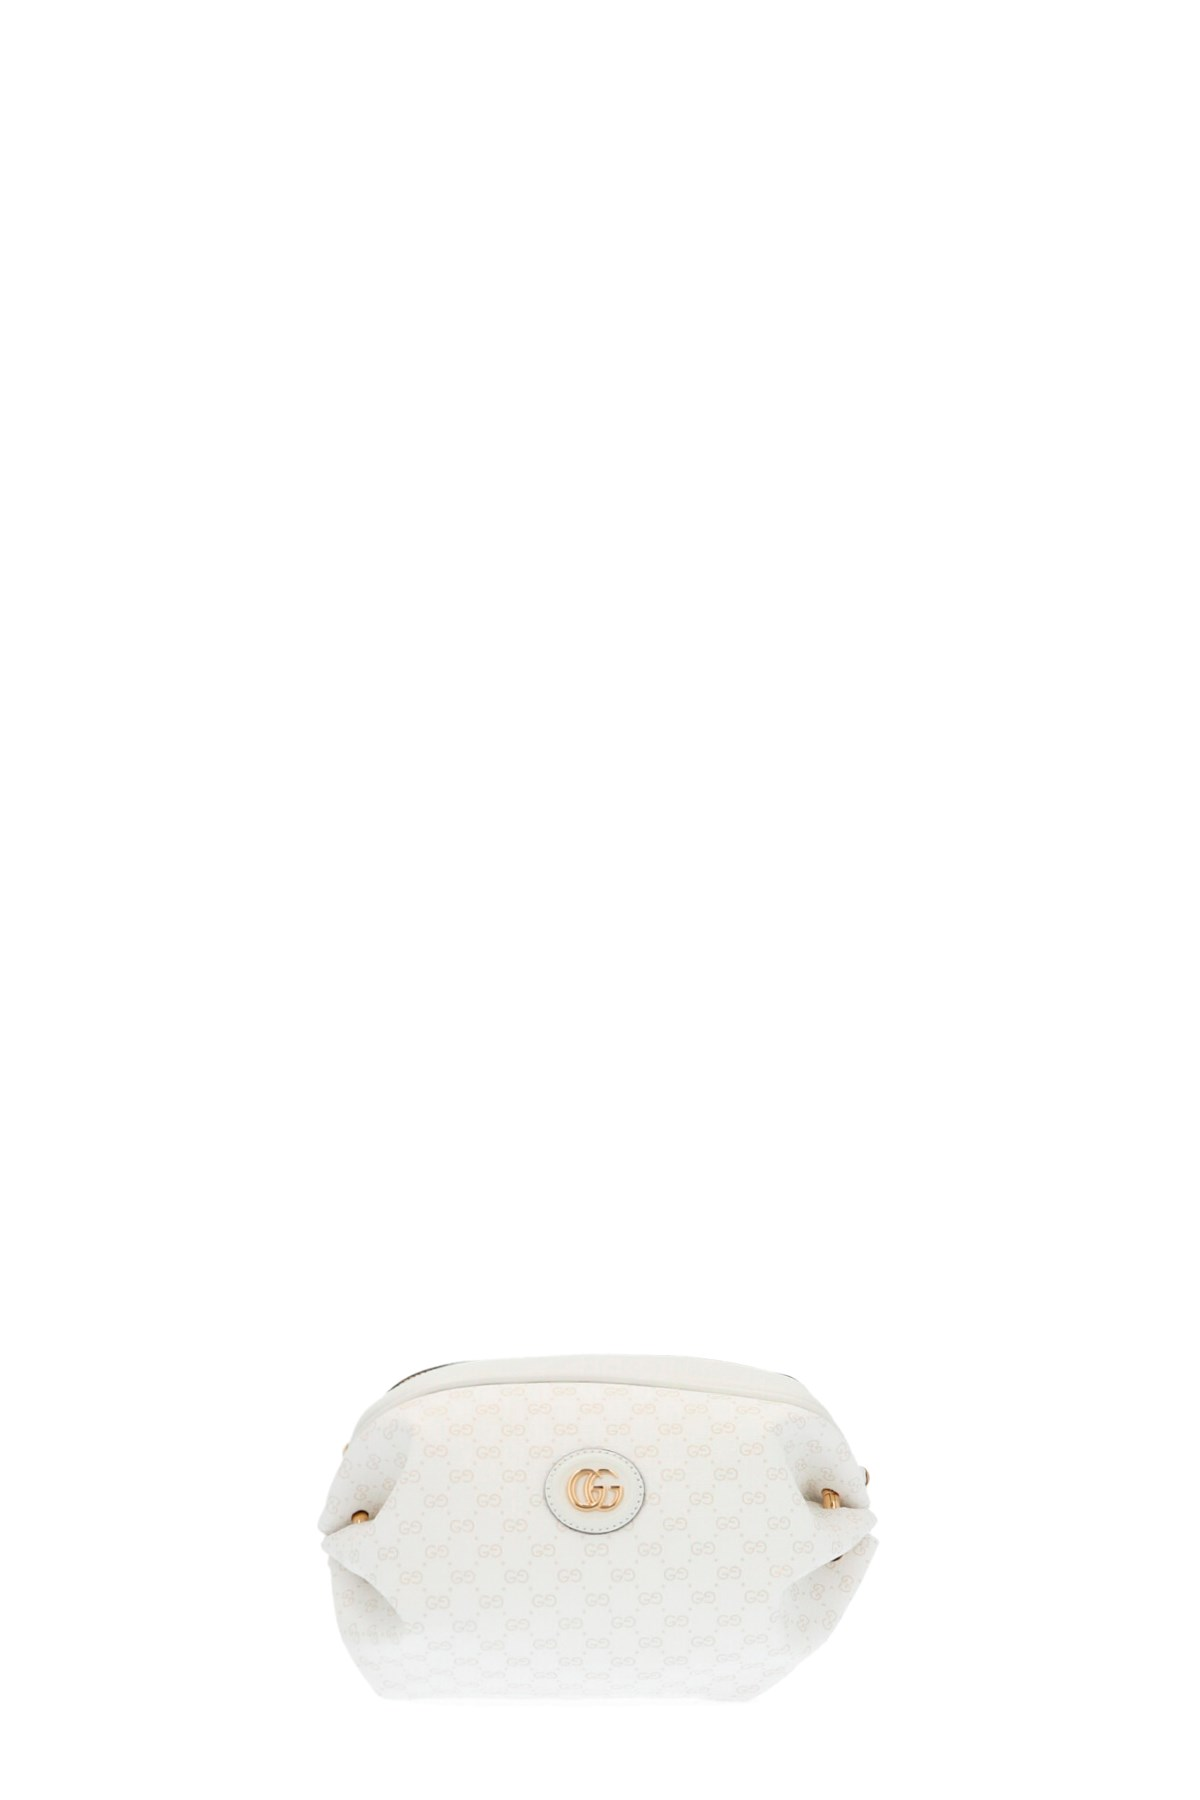 bb294aad4 gucci 'Candy' crossbody bag available on julian-fashion.com - 78372